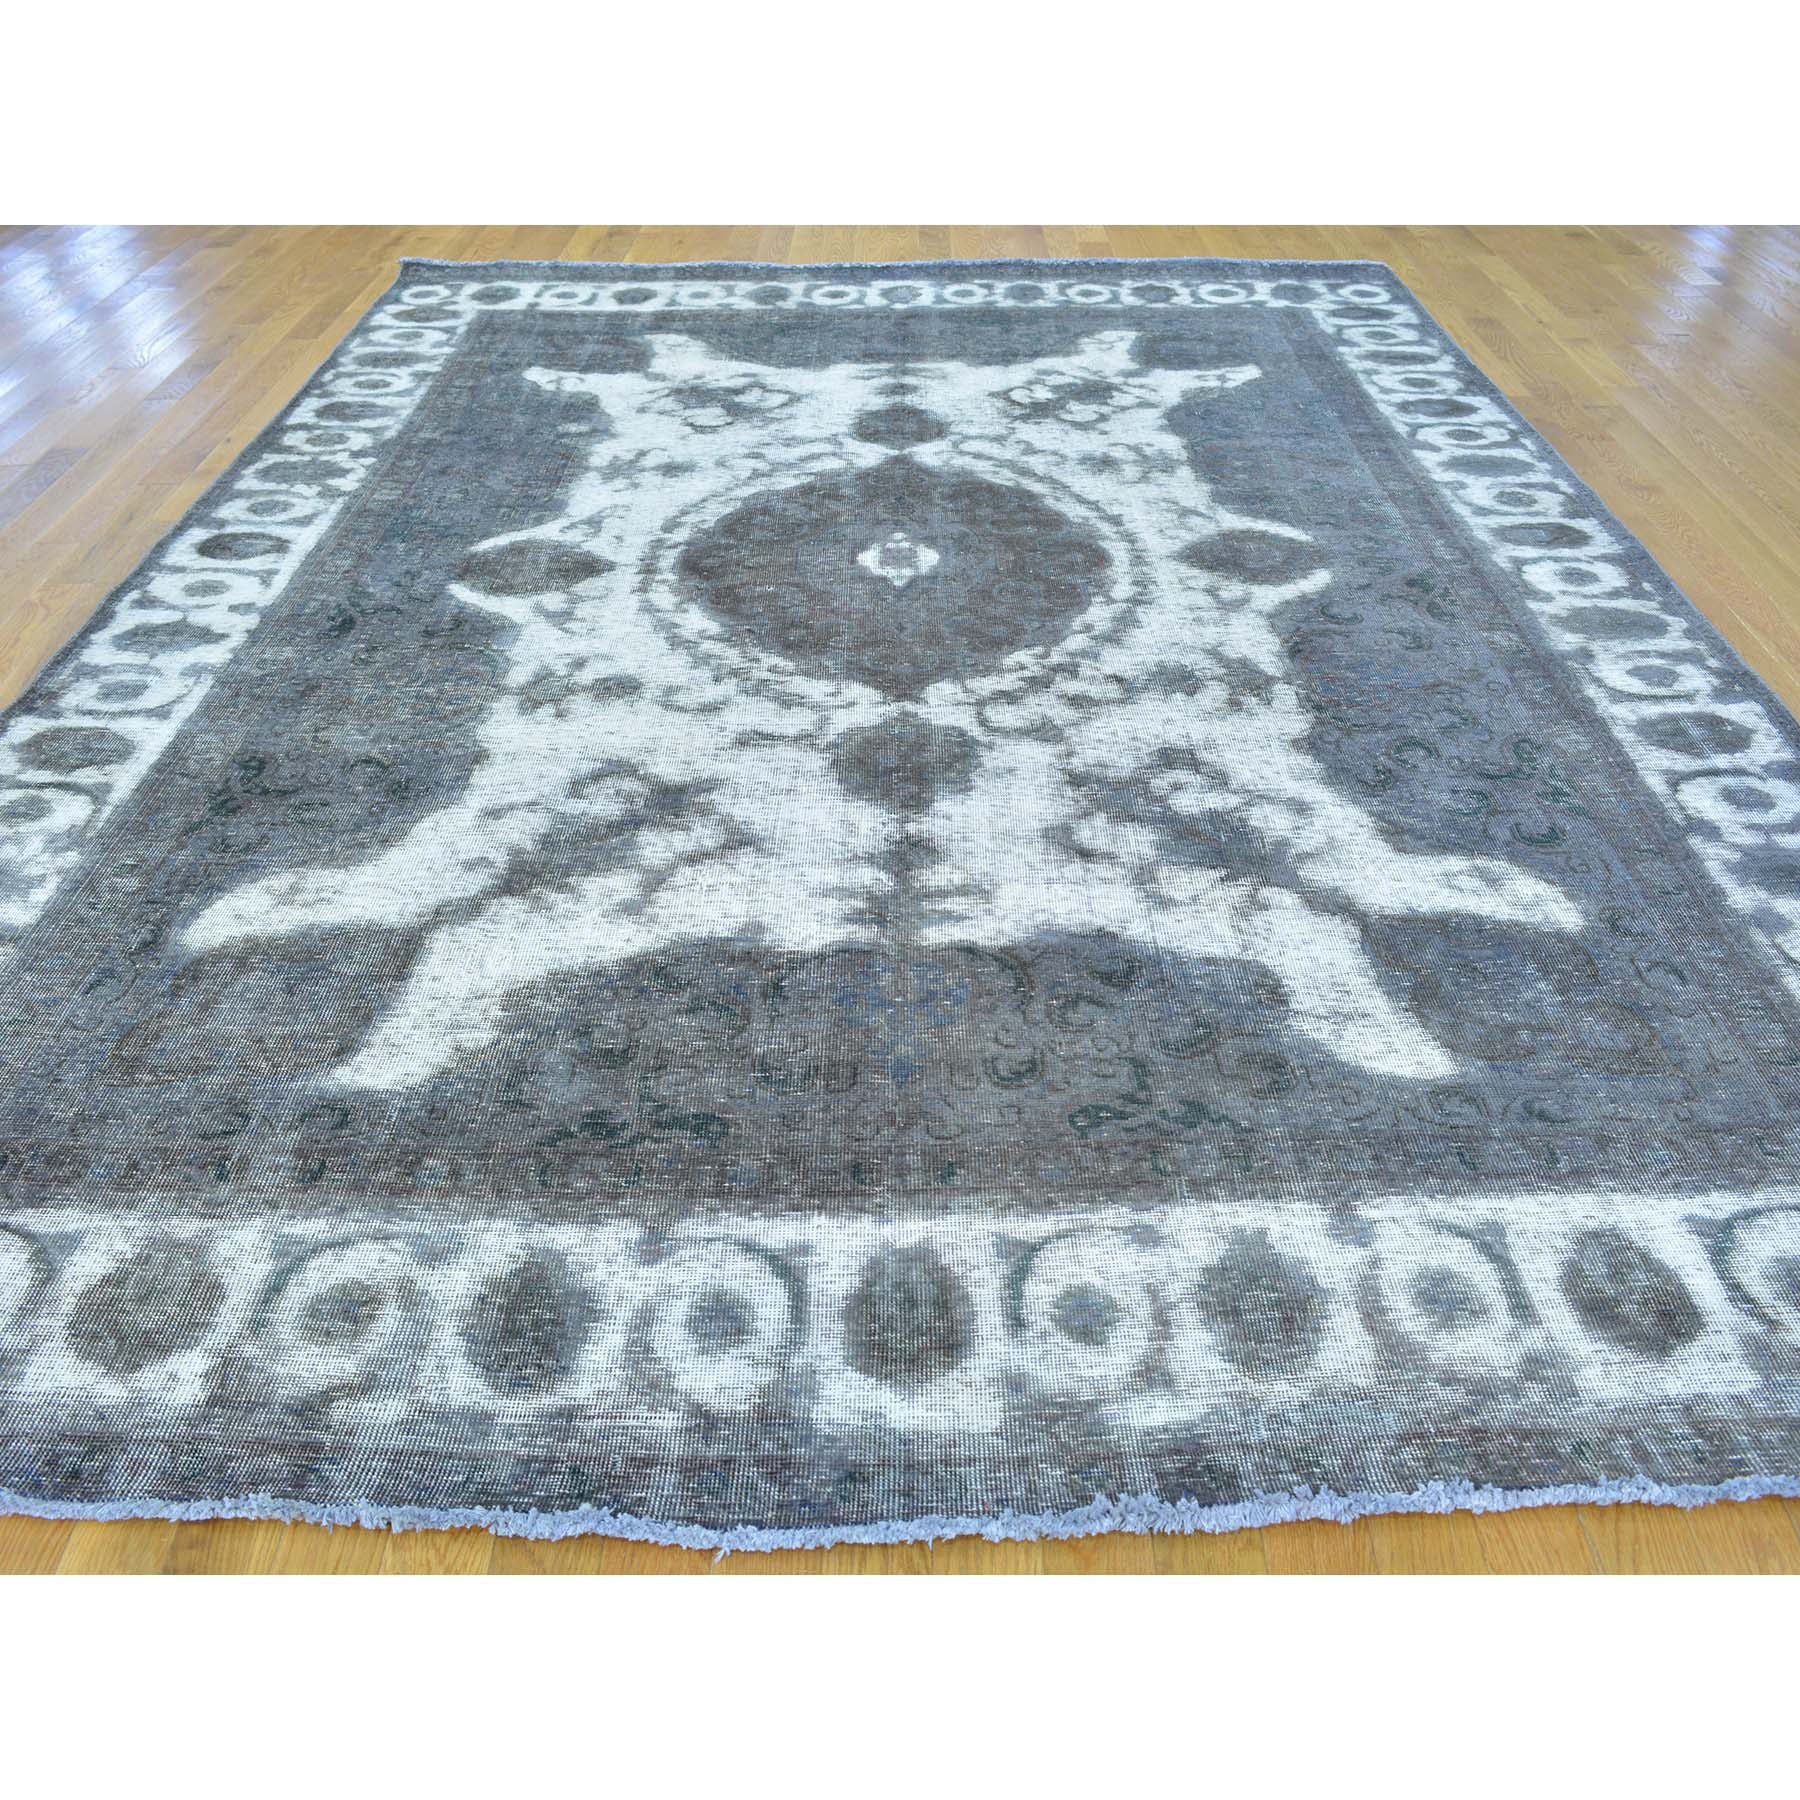 "Handmade Overdyed & Vintage Rectangle Rug > Design# SH25127 > Size: 8'-0"" x 11'-0"" [ONLINE ONLY]"